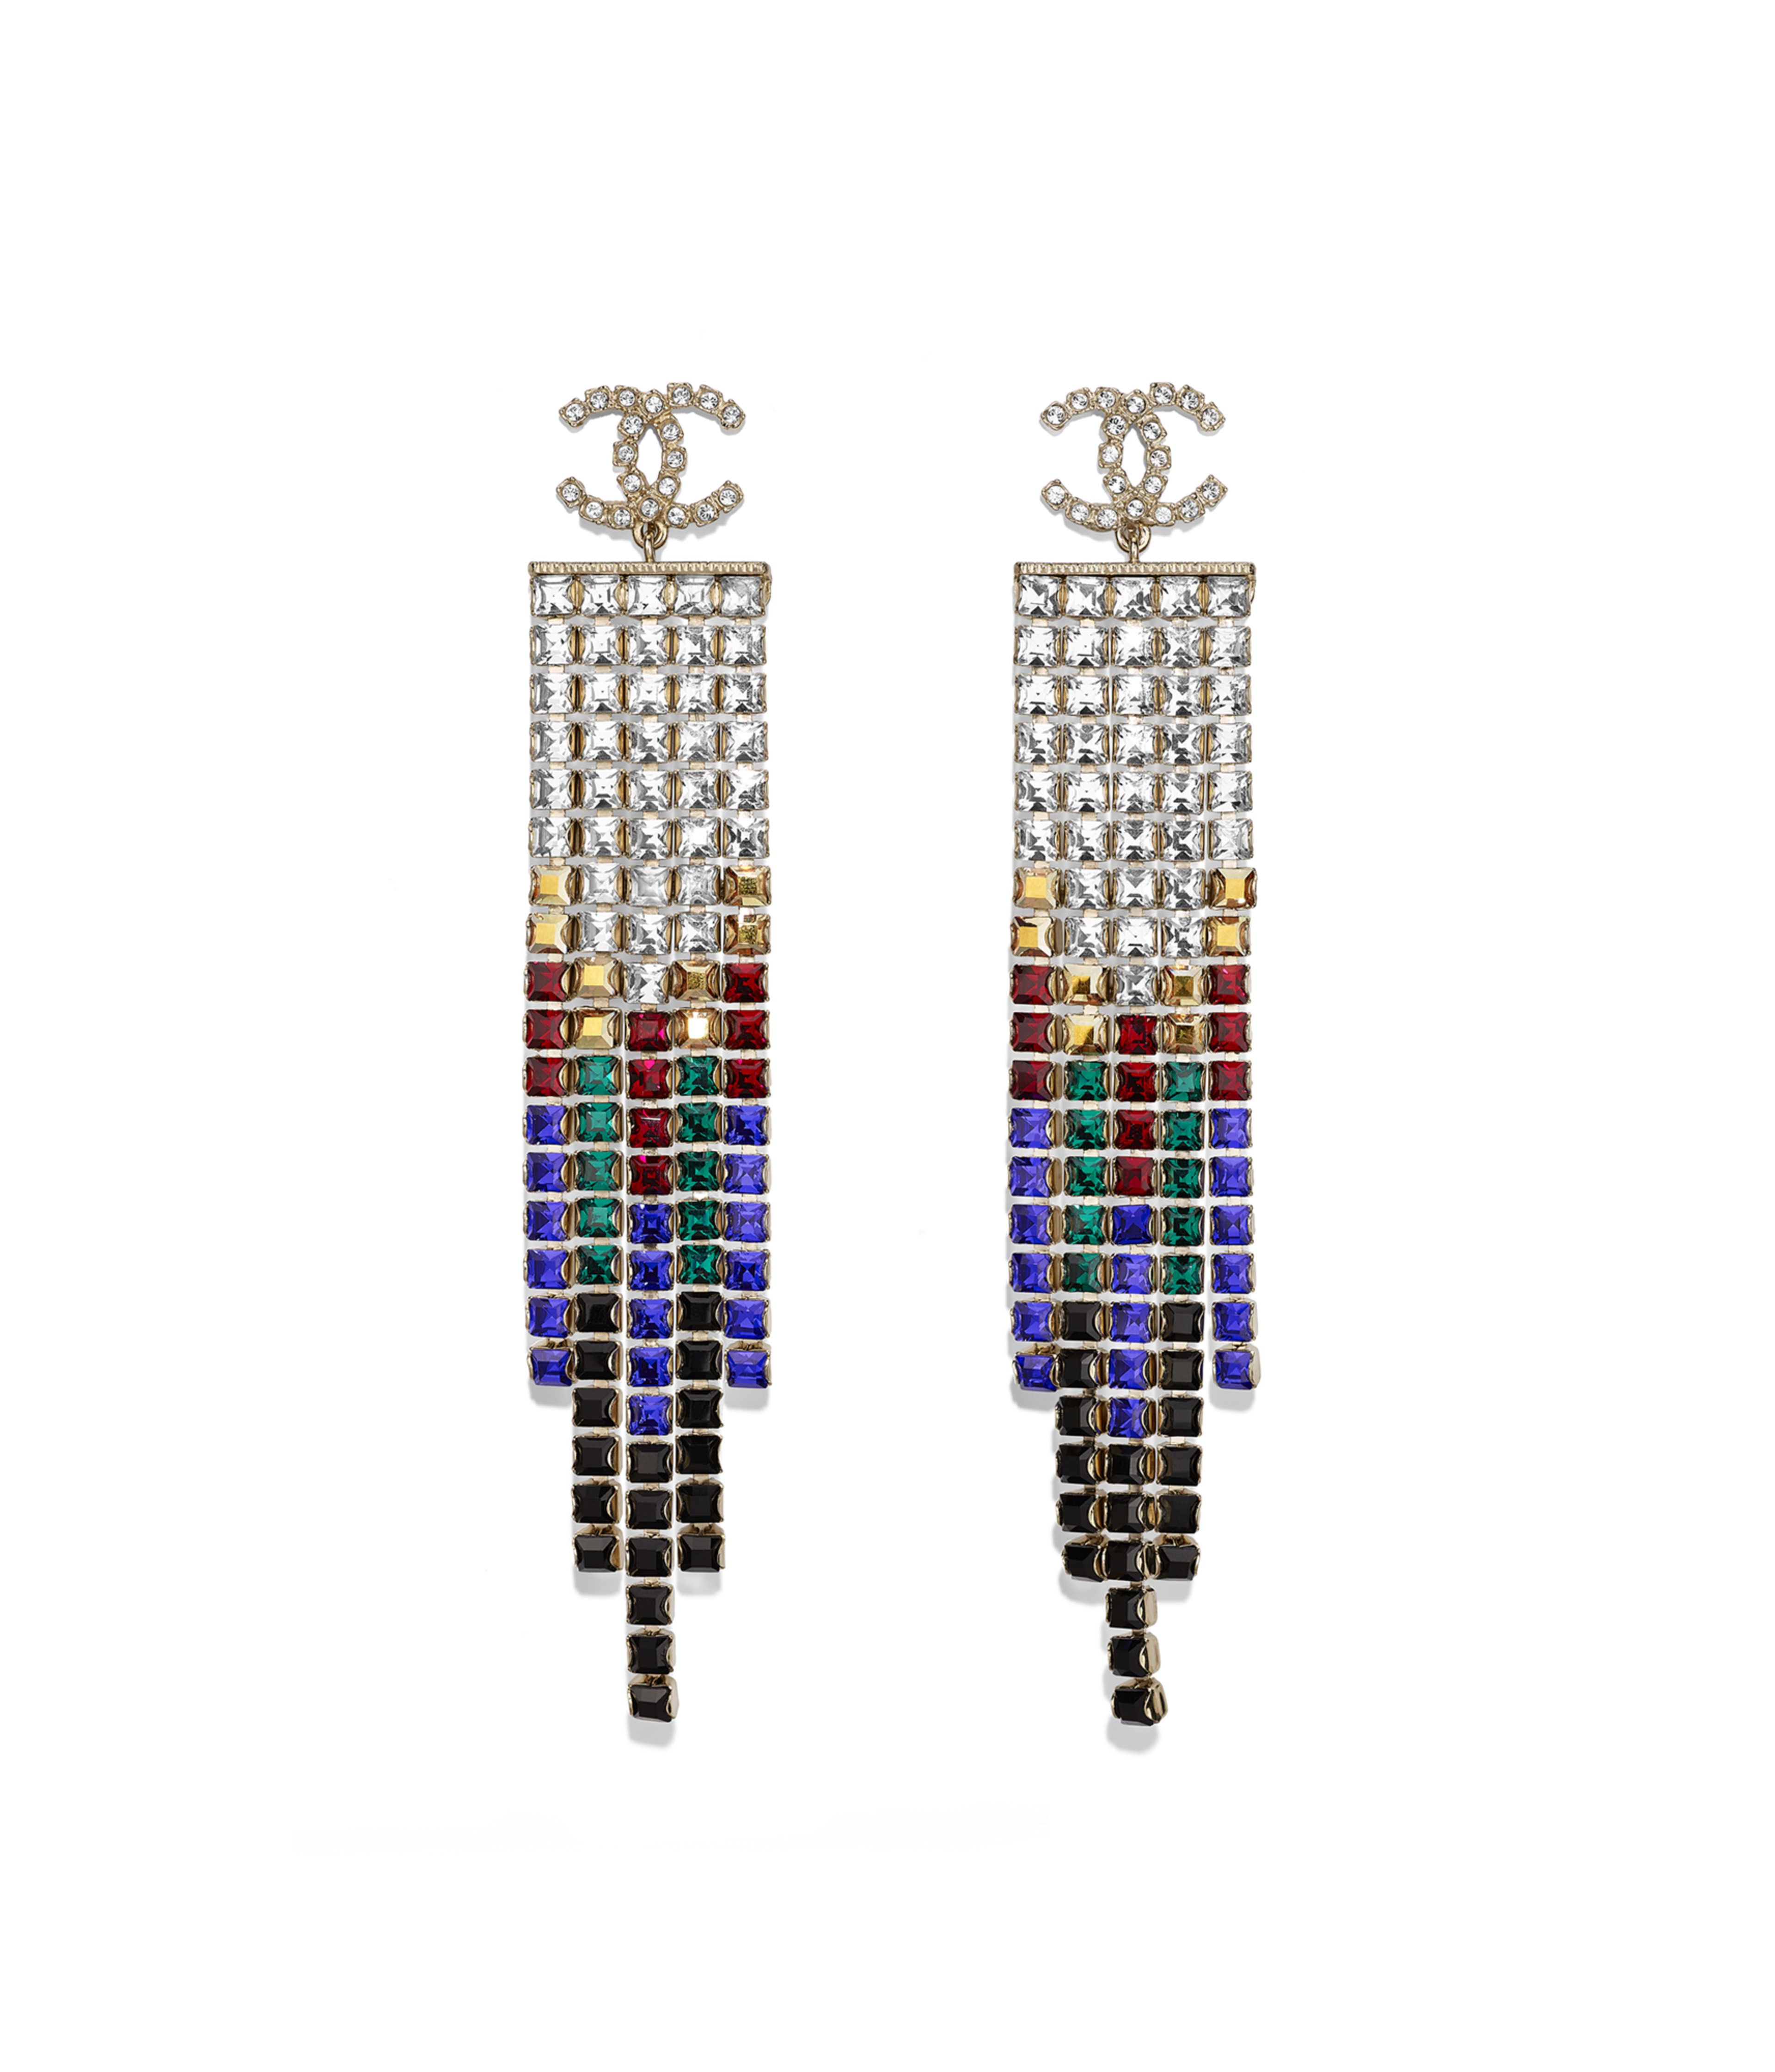 355e8c852 Clip-on Earrings Metal & Strass, Gold, Black, Red, Blue & Crystal Ref.  AB1641Y02003Z9145